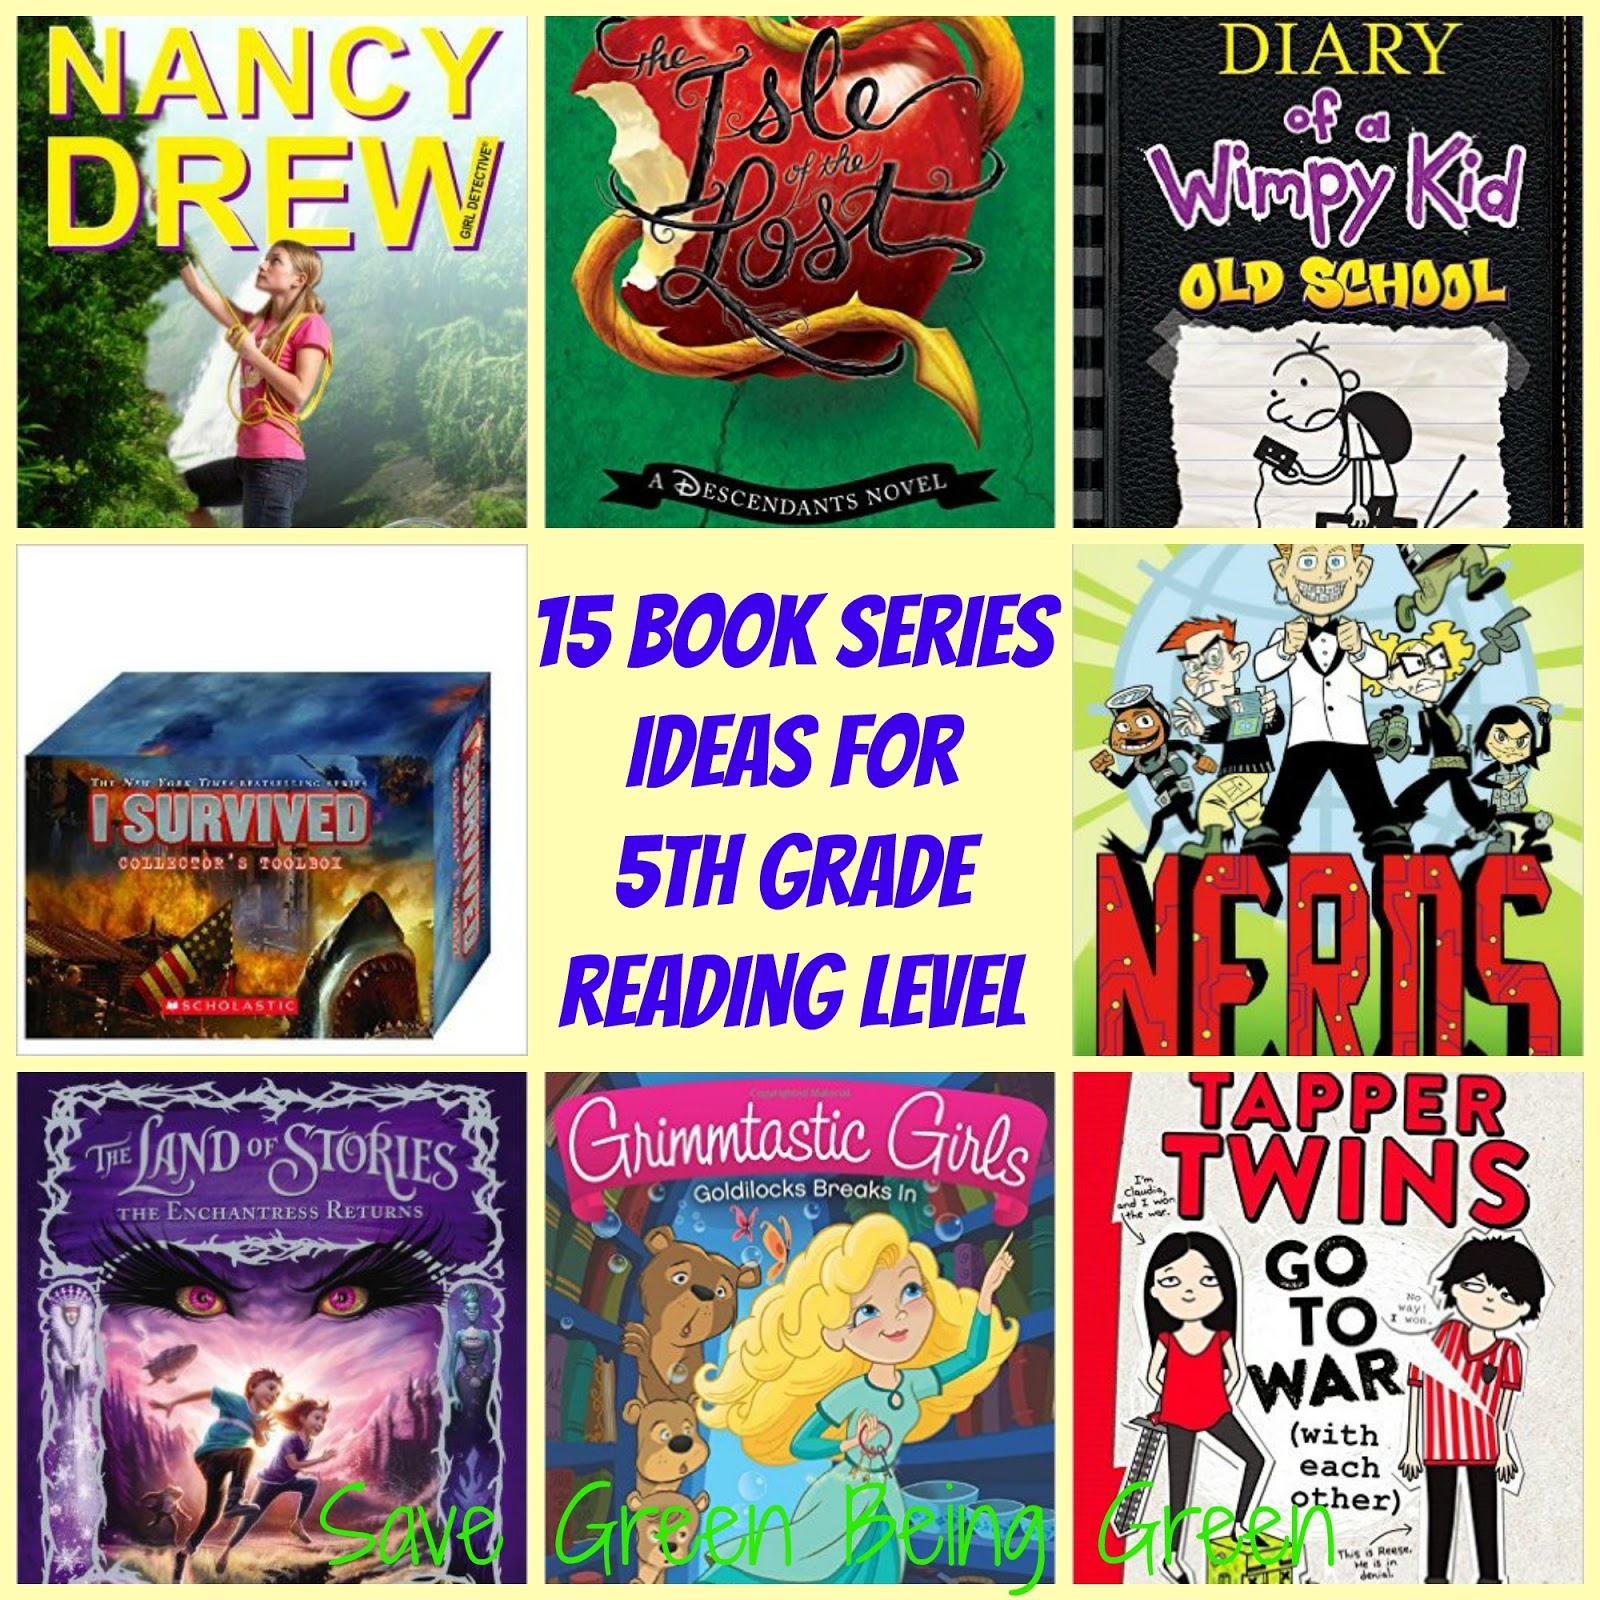 Save Green Being Green 15 Book Series Ideas For 5th Grade